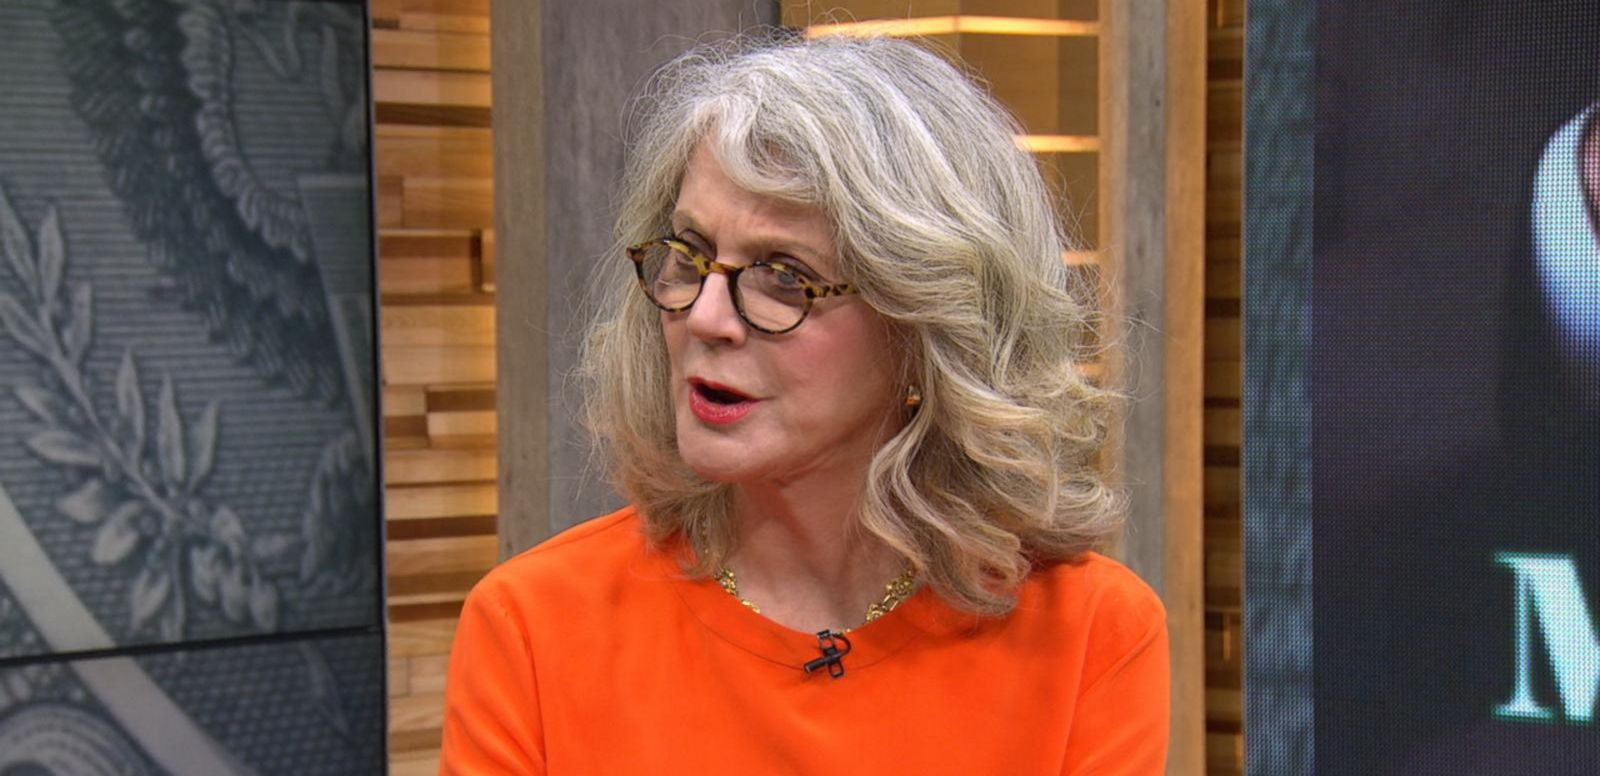 VIDEO: Blythe Danner Plays Ruth Madoff in New Miniseries